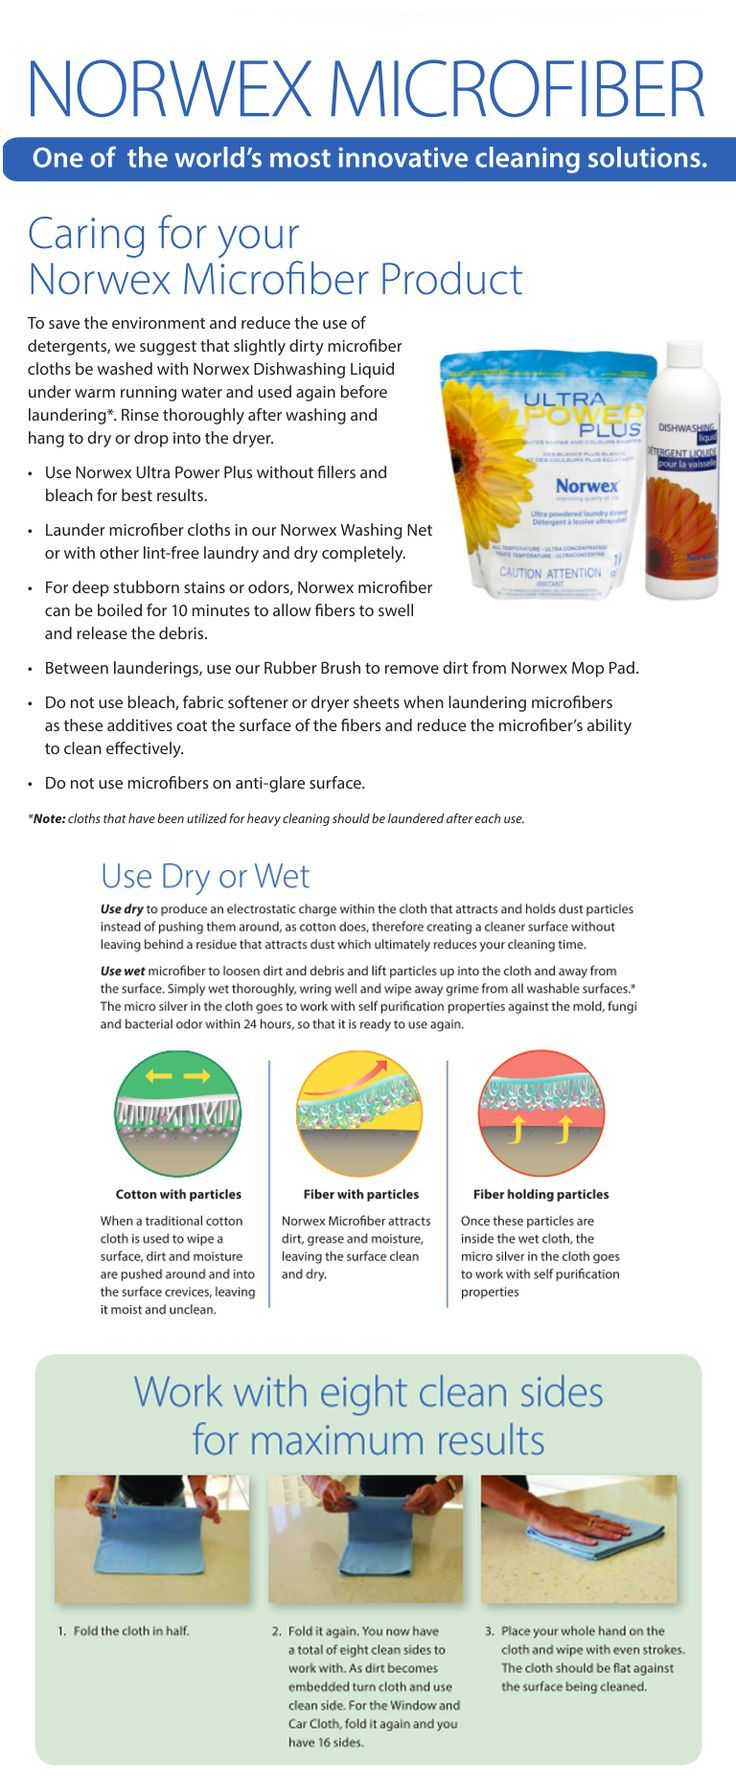 Norwex #microfiber #washing, care and usage instructions!